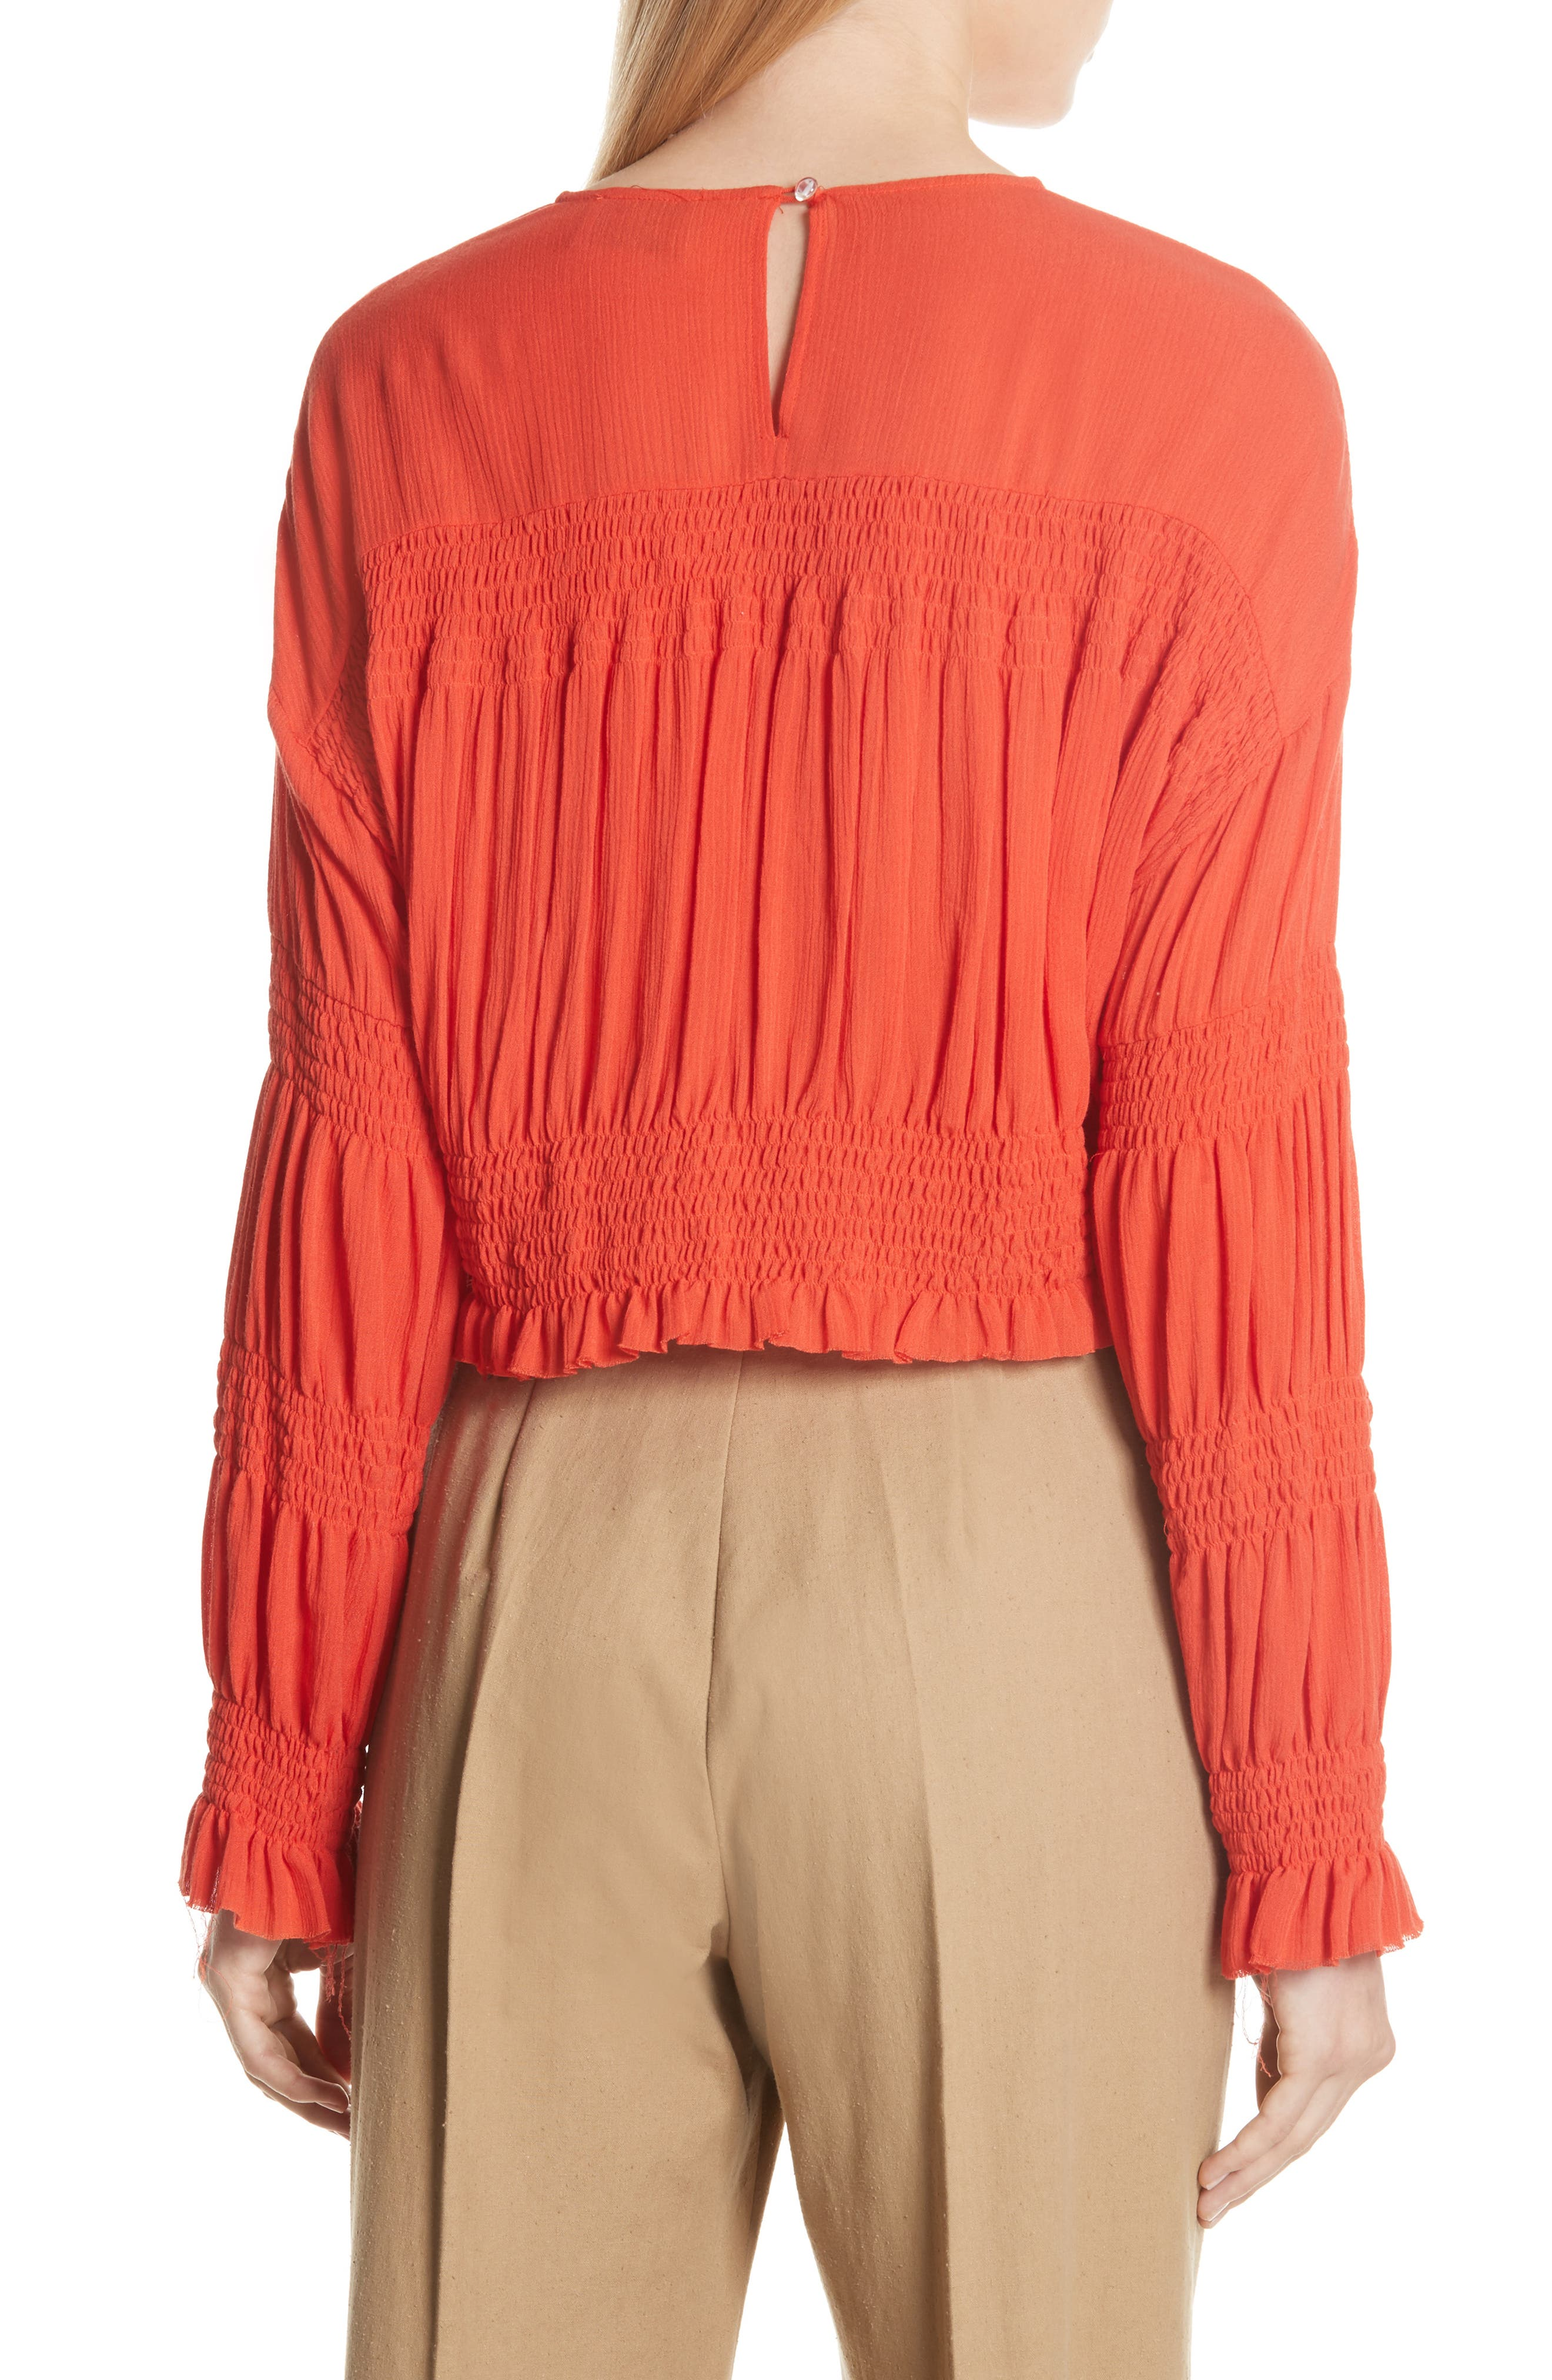 Penta Smocked Blouse,                             Alternate thumbnail 2, color,                             CORAL